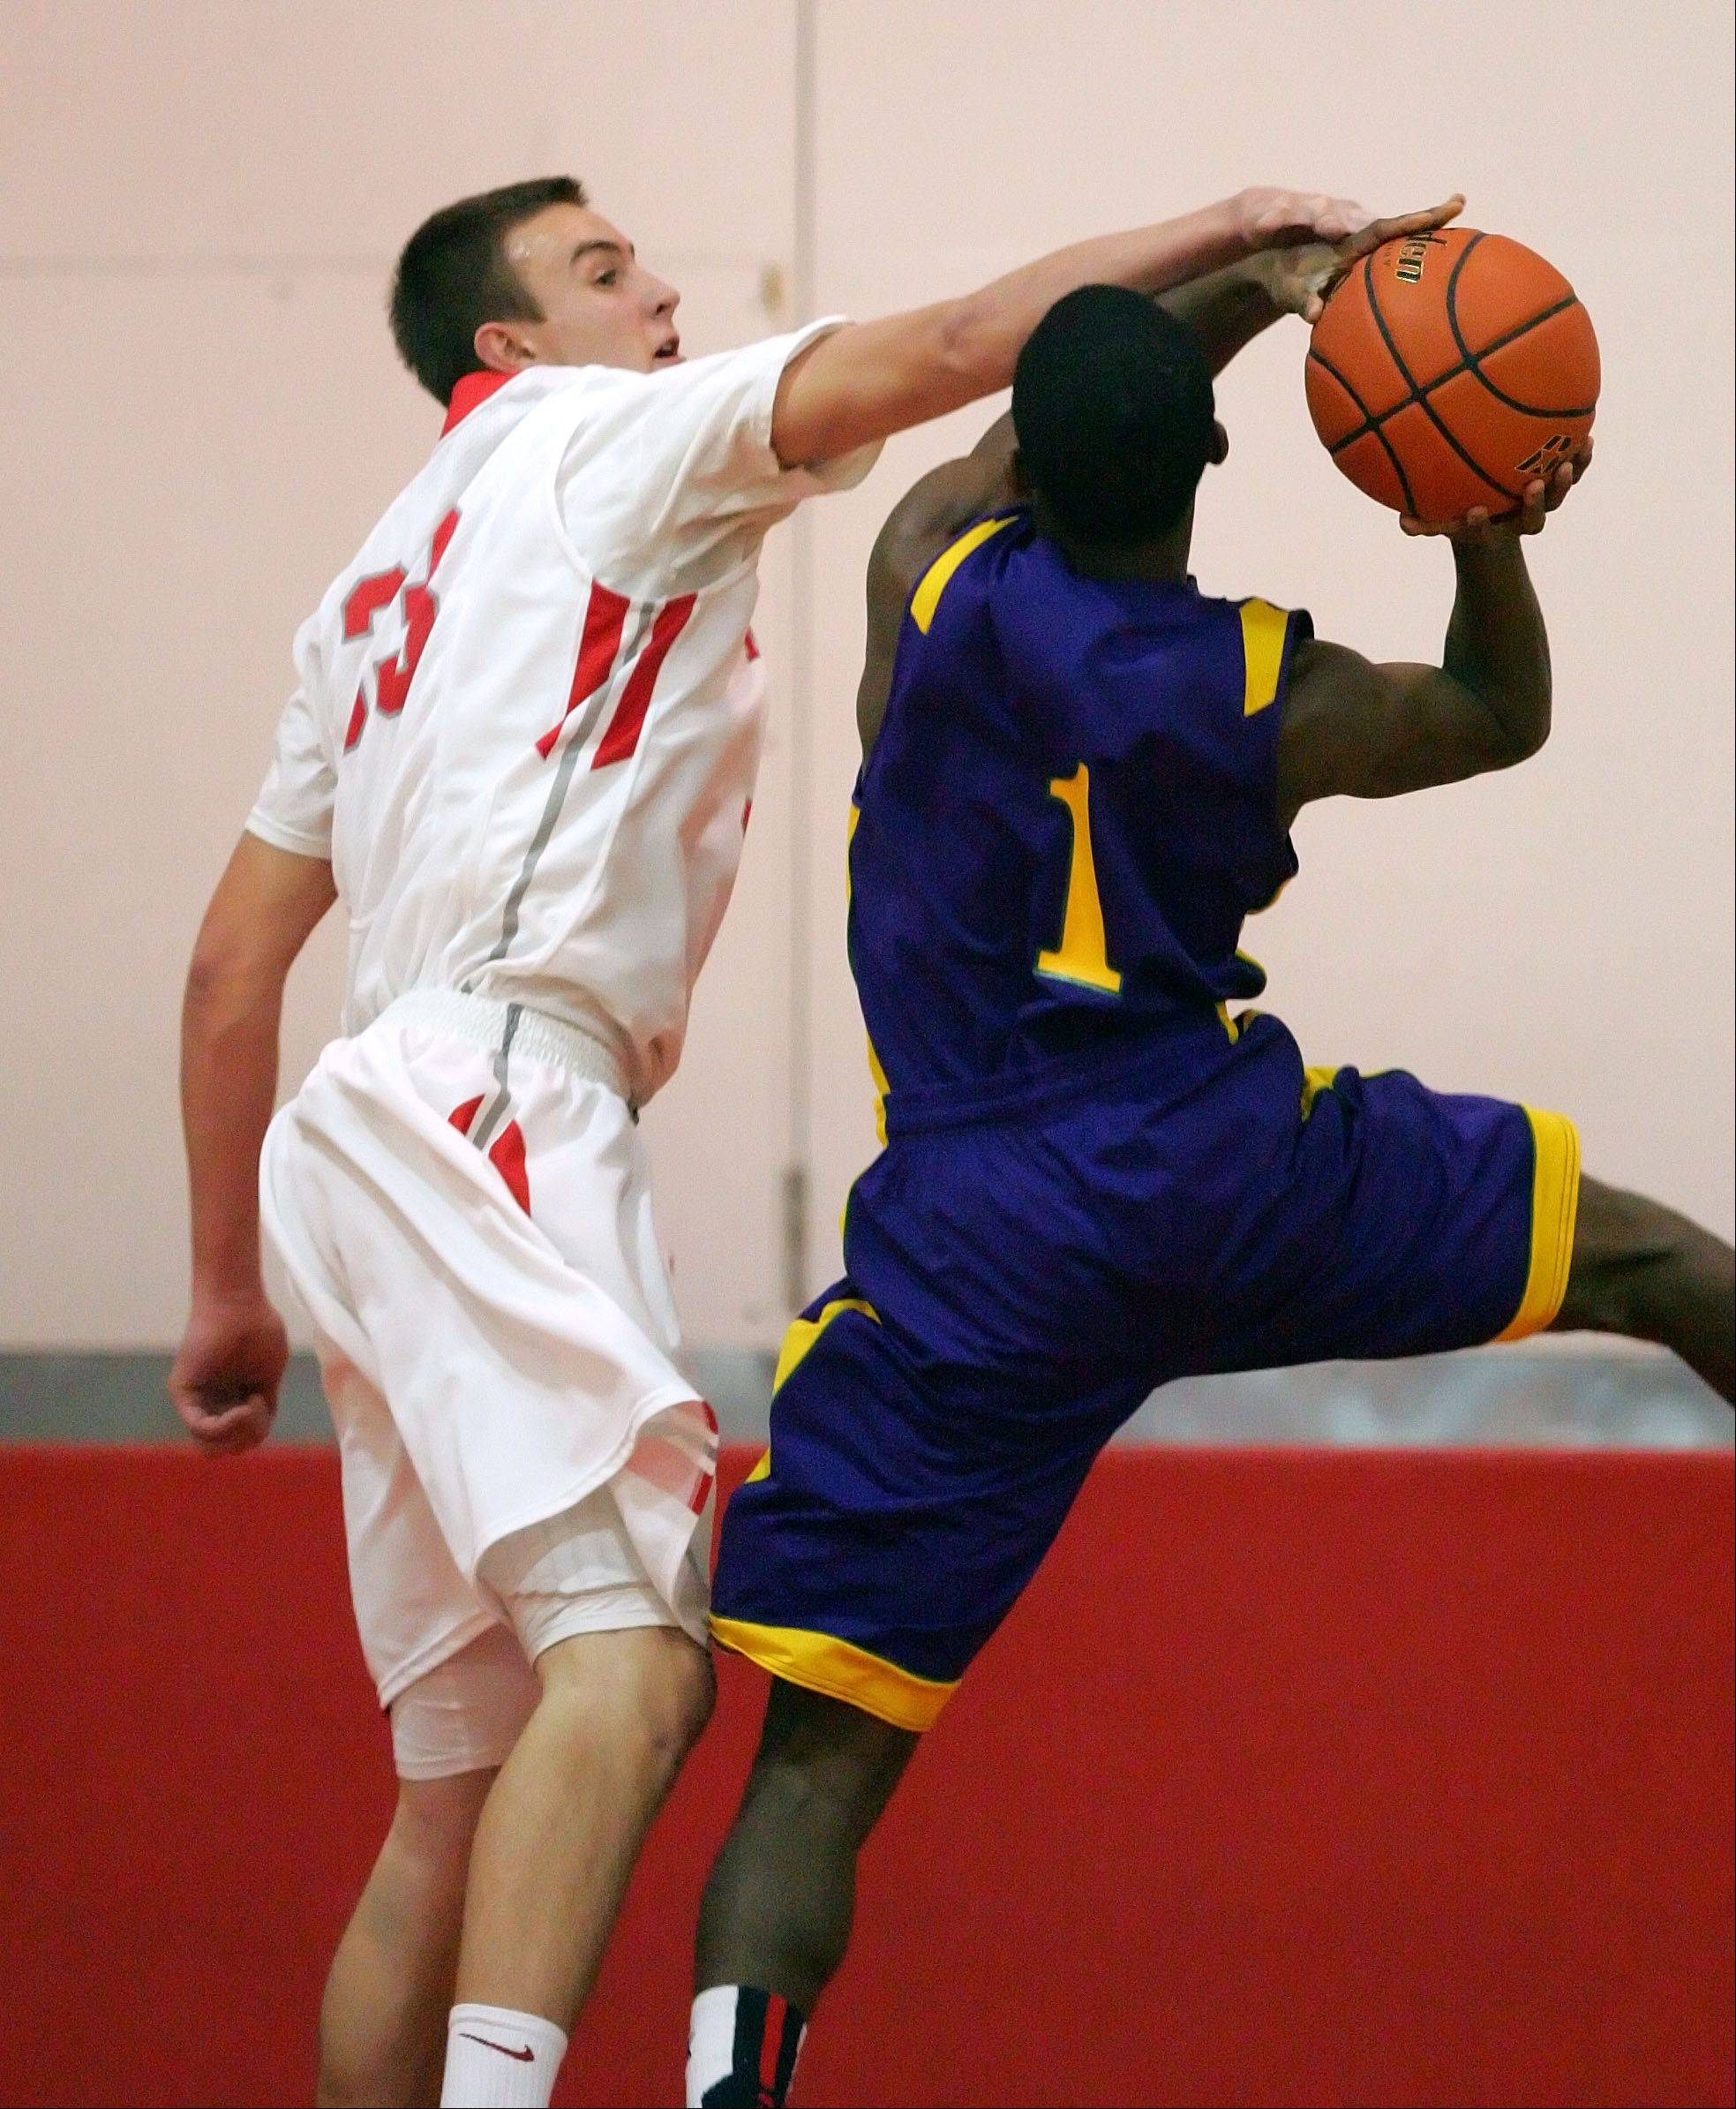 Mundelein's Sean O'Brien, left, defends against Waukegan's Jordan Johnson on Friday night at Mundelein.